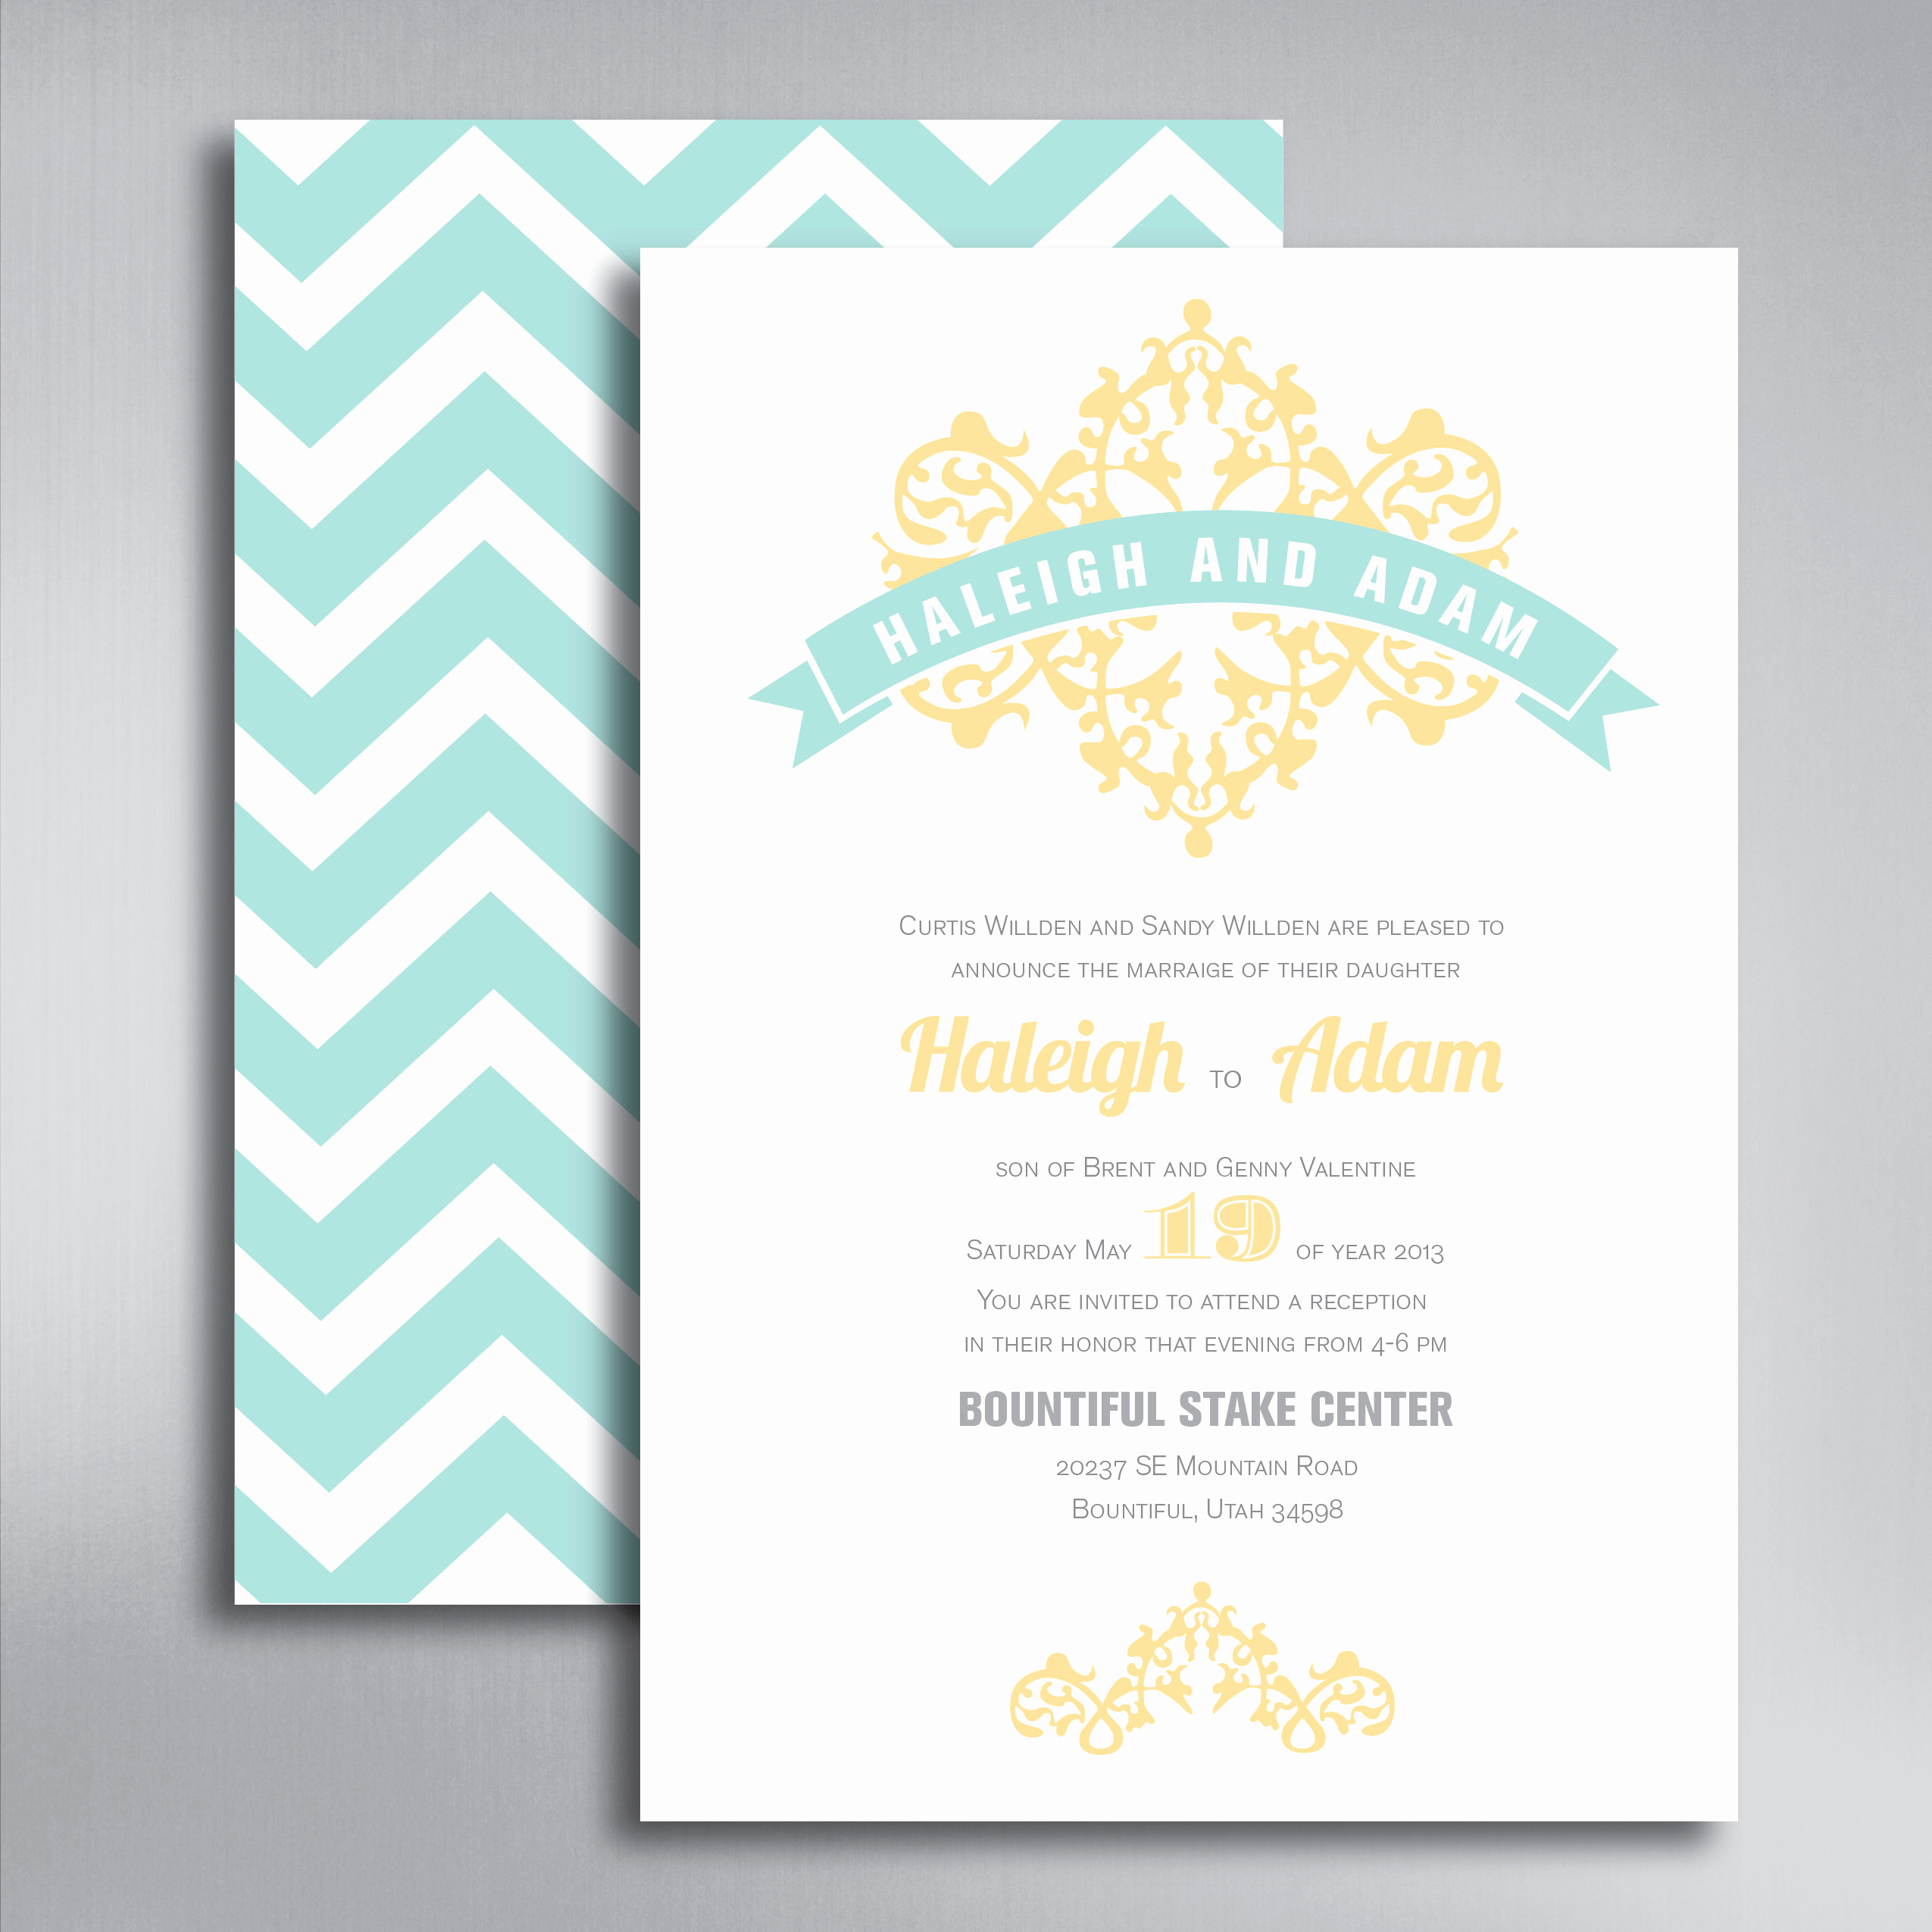 Best Wedding Invitation Cards Designs Beautiful 20 Lovely Best Wedding Cards